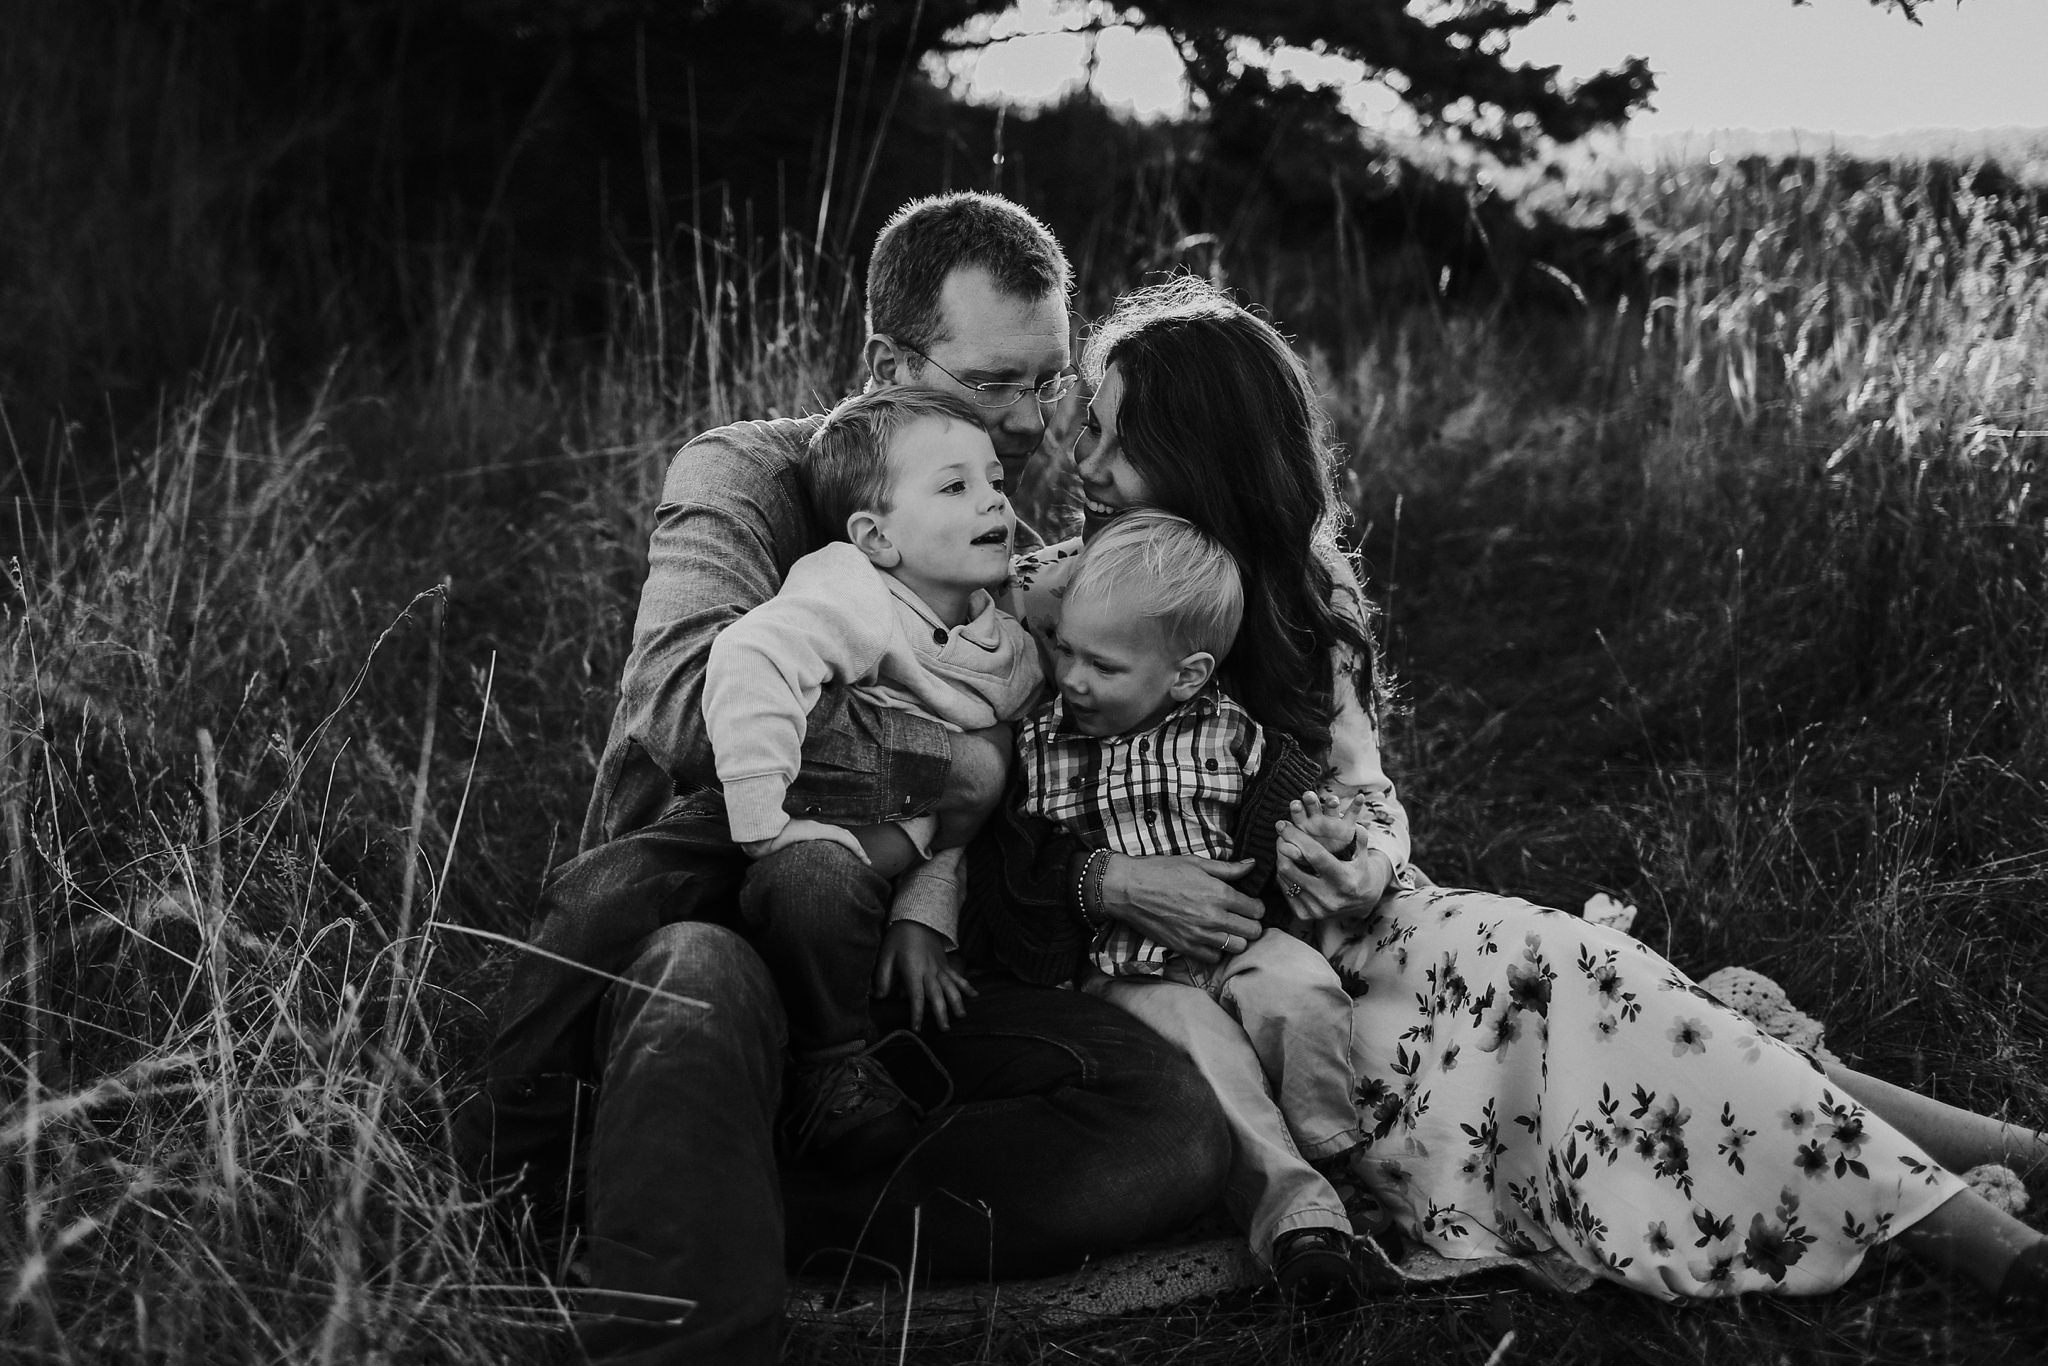 Whidbey-Island-Family-Photographer-Kara-Chappell-Photography_1068.jpg